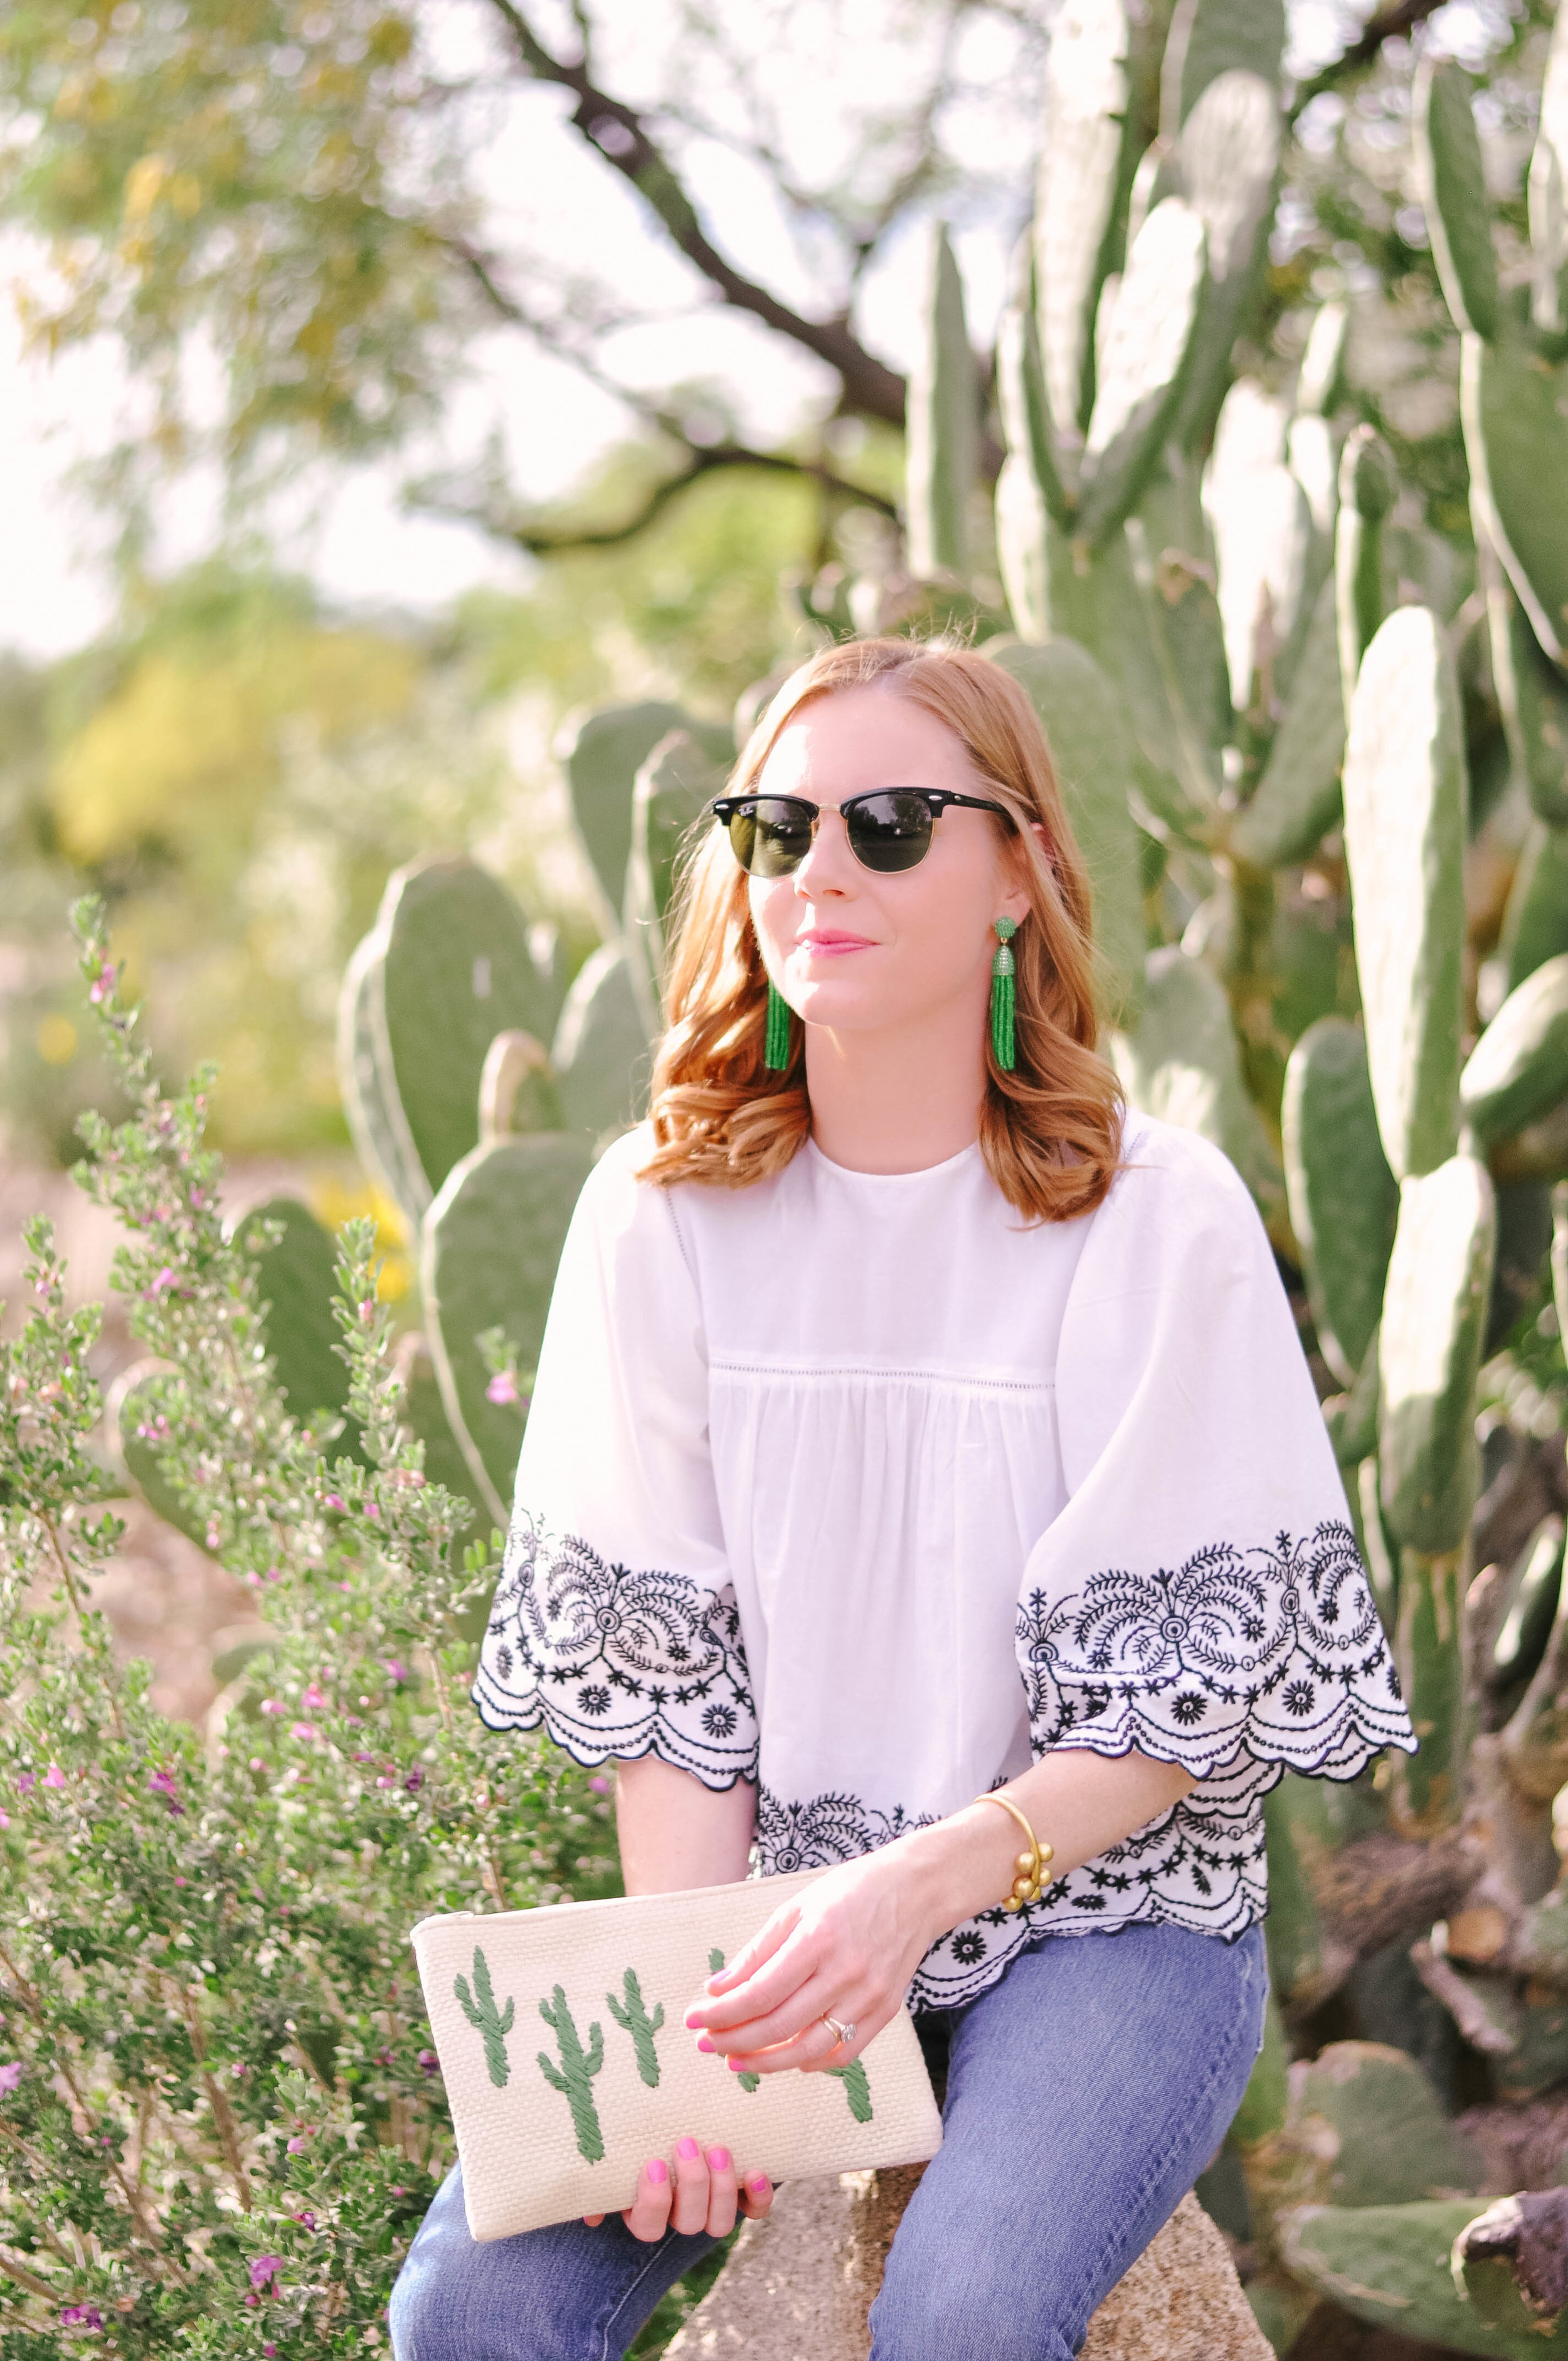 Woman in sunglasses and cactus clutch